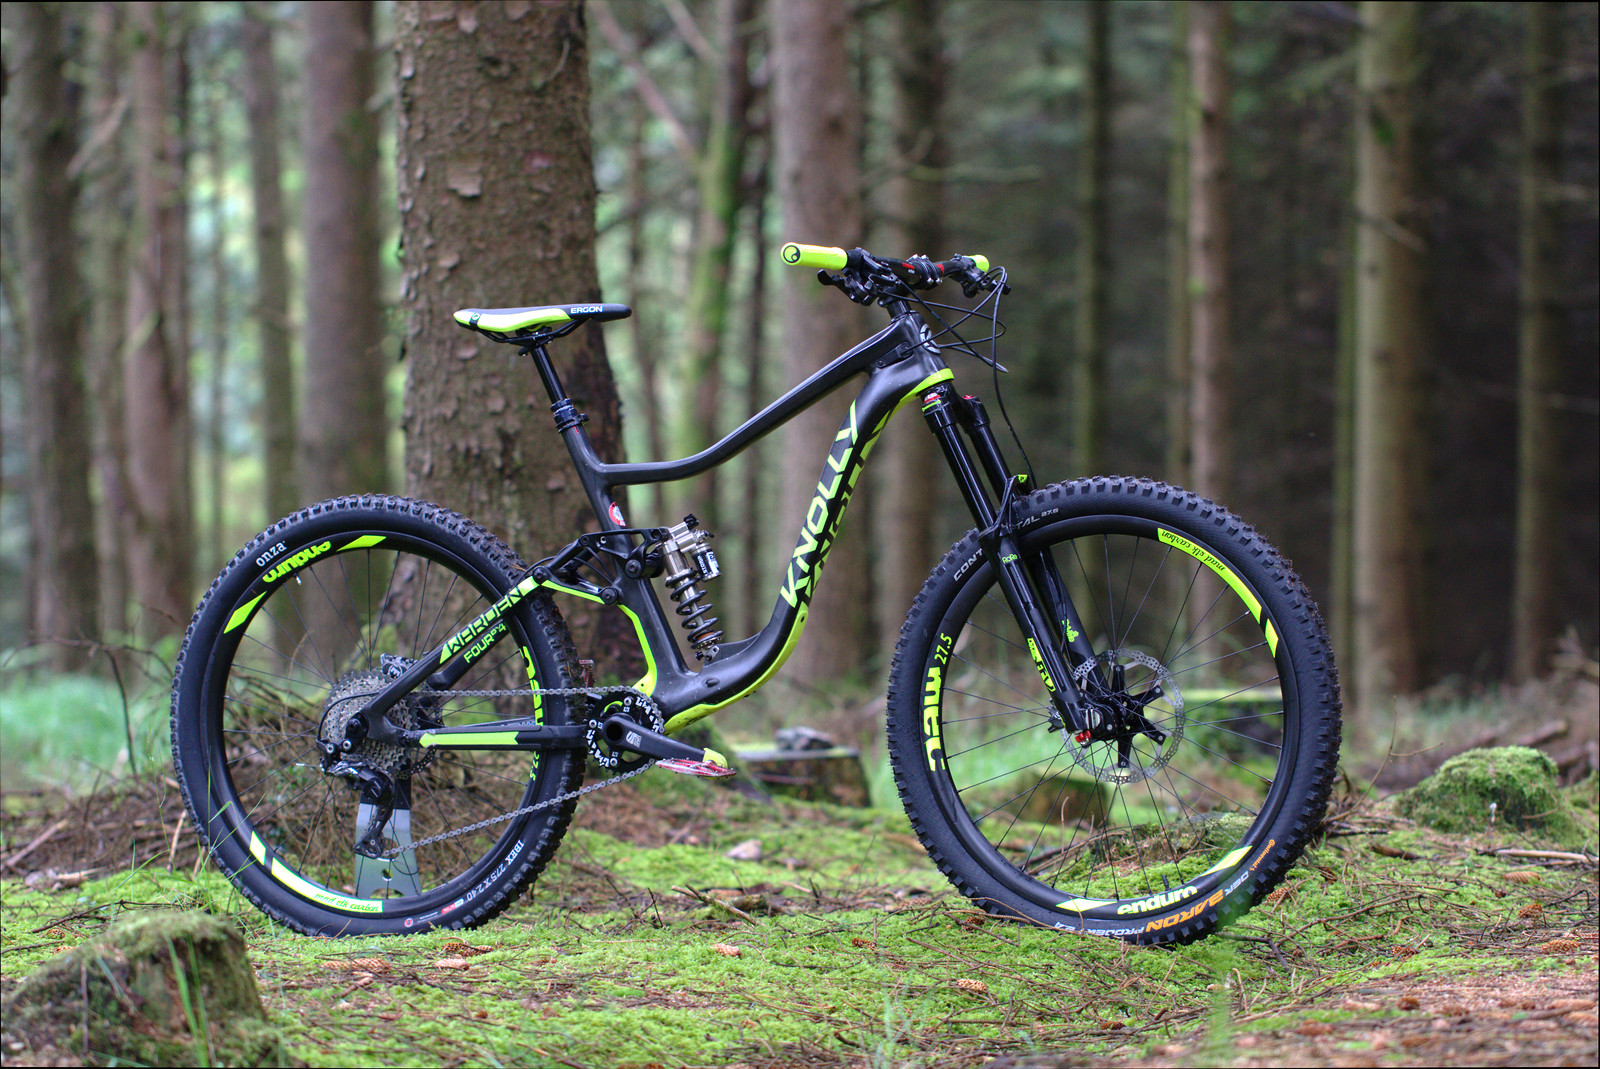 b9a5f2f5658c Knolly Warden Carbon - The green hornet - joyridefish s Bike Check ...